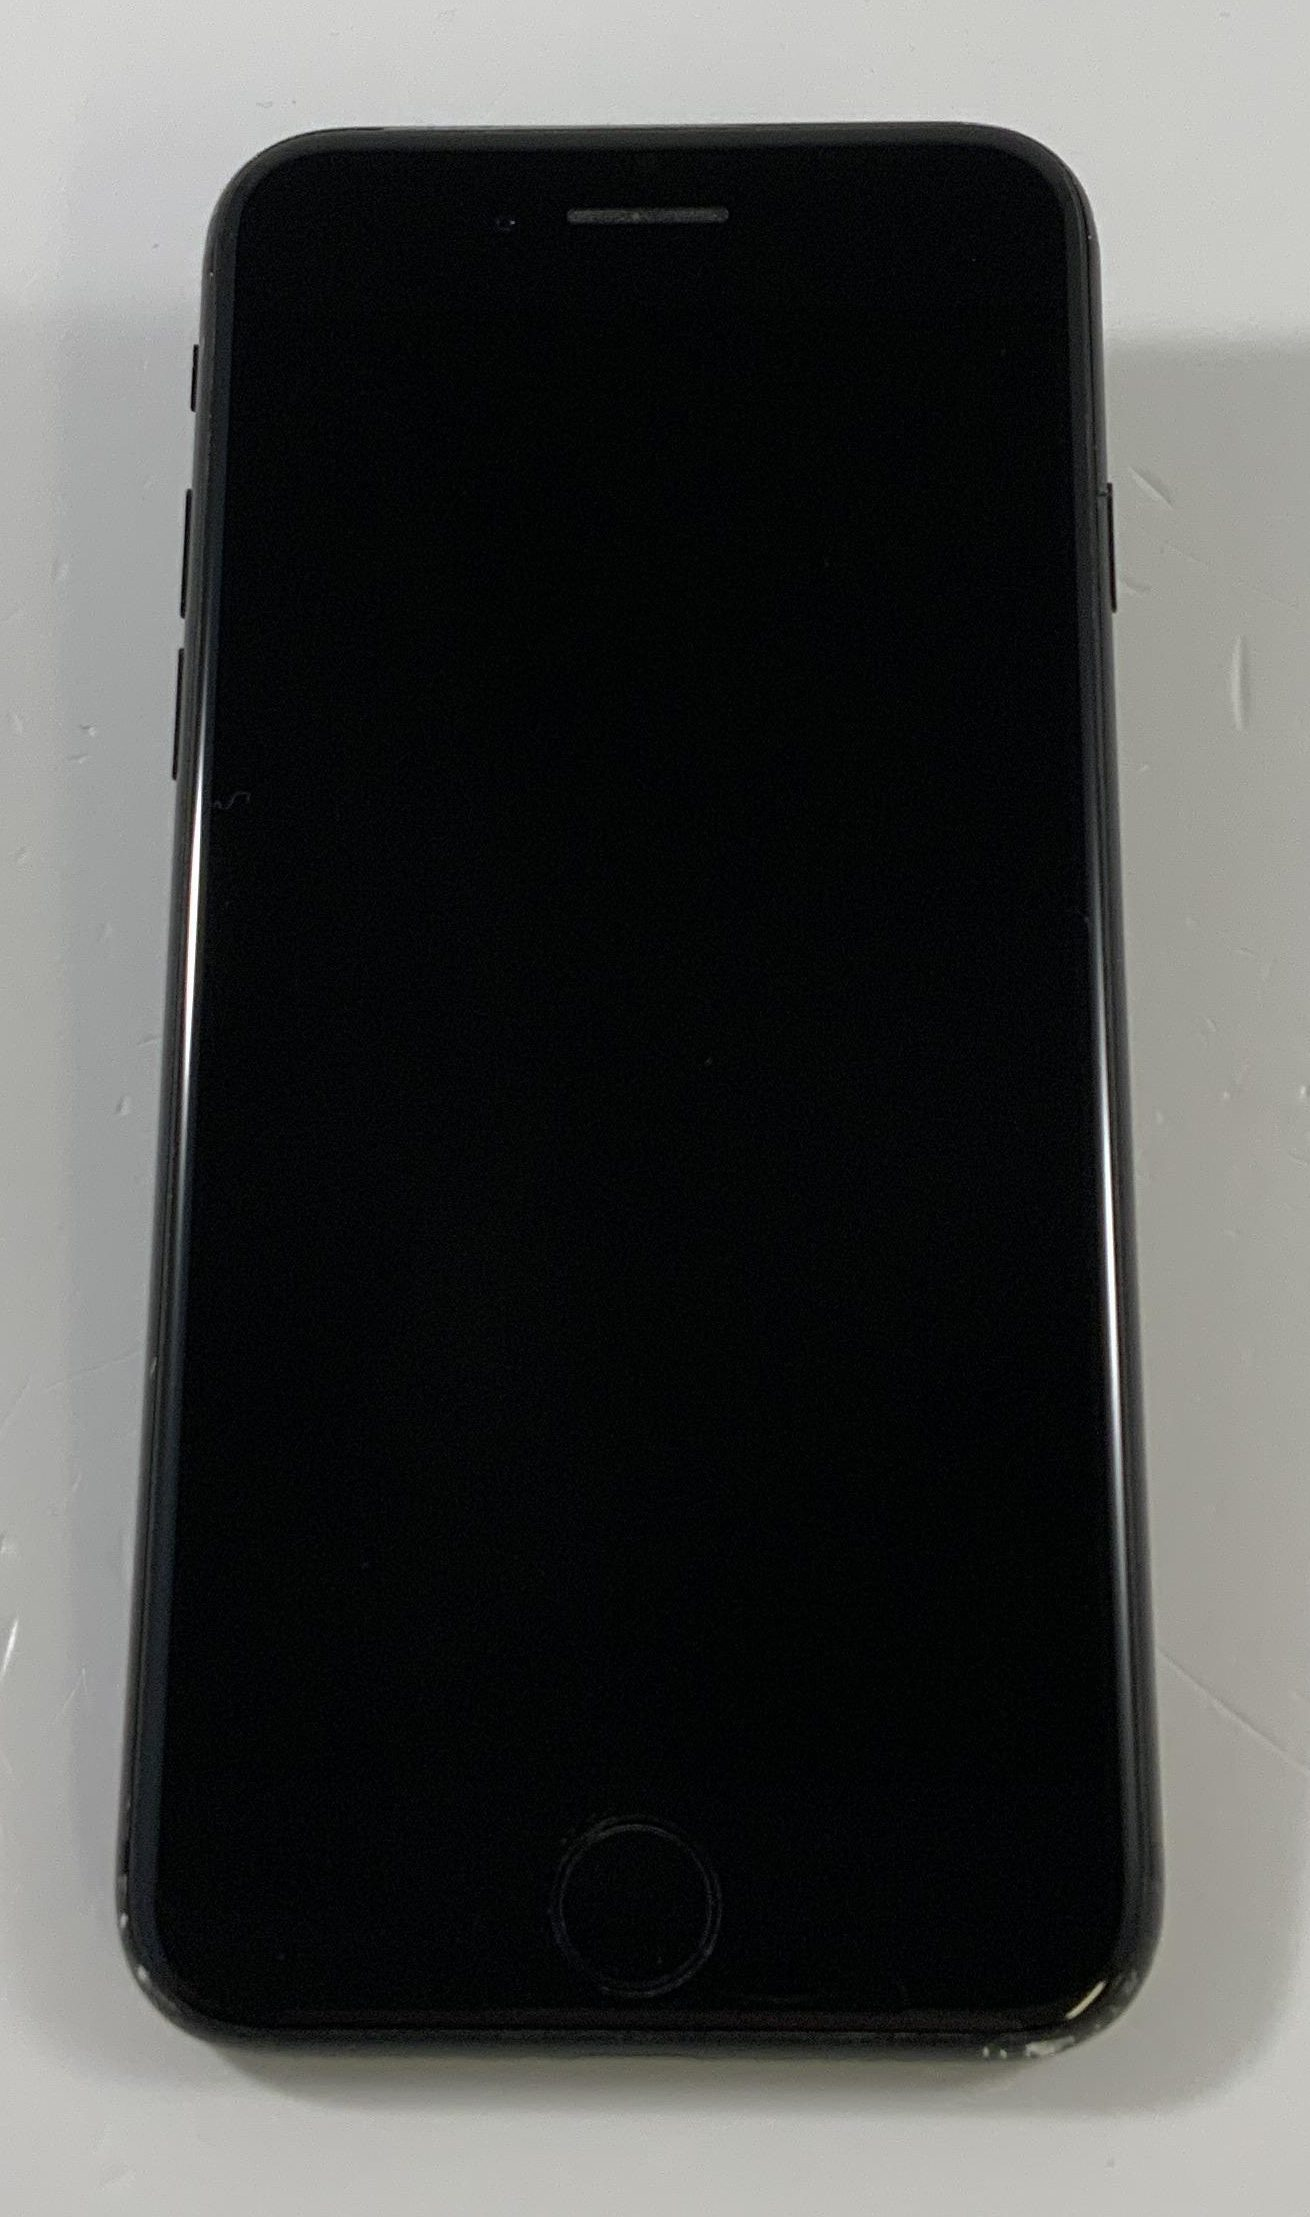 iPhone 7 32GB, 32GB, Black, immagine 1